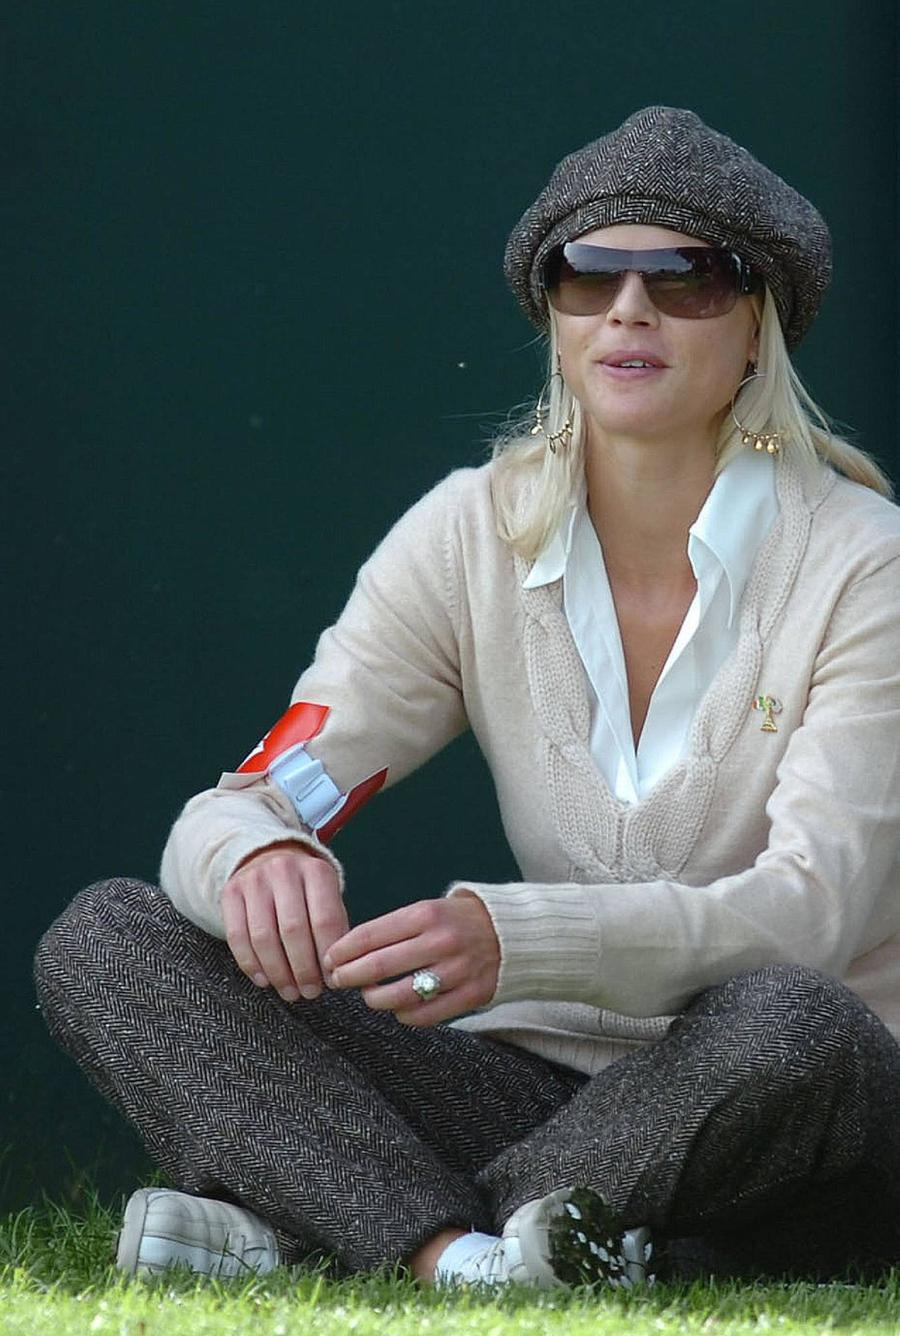 Elin Nordegren Back On Again With Billionaire Boyfriend